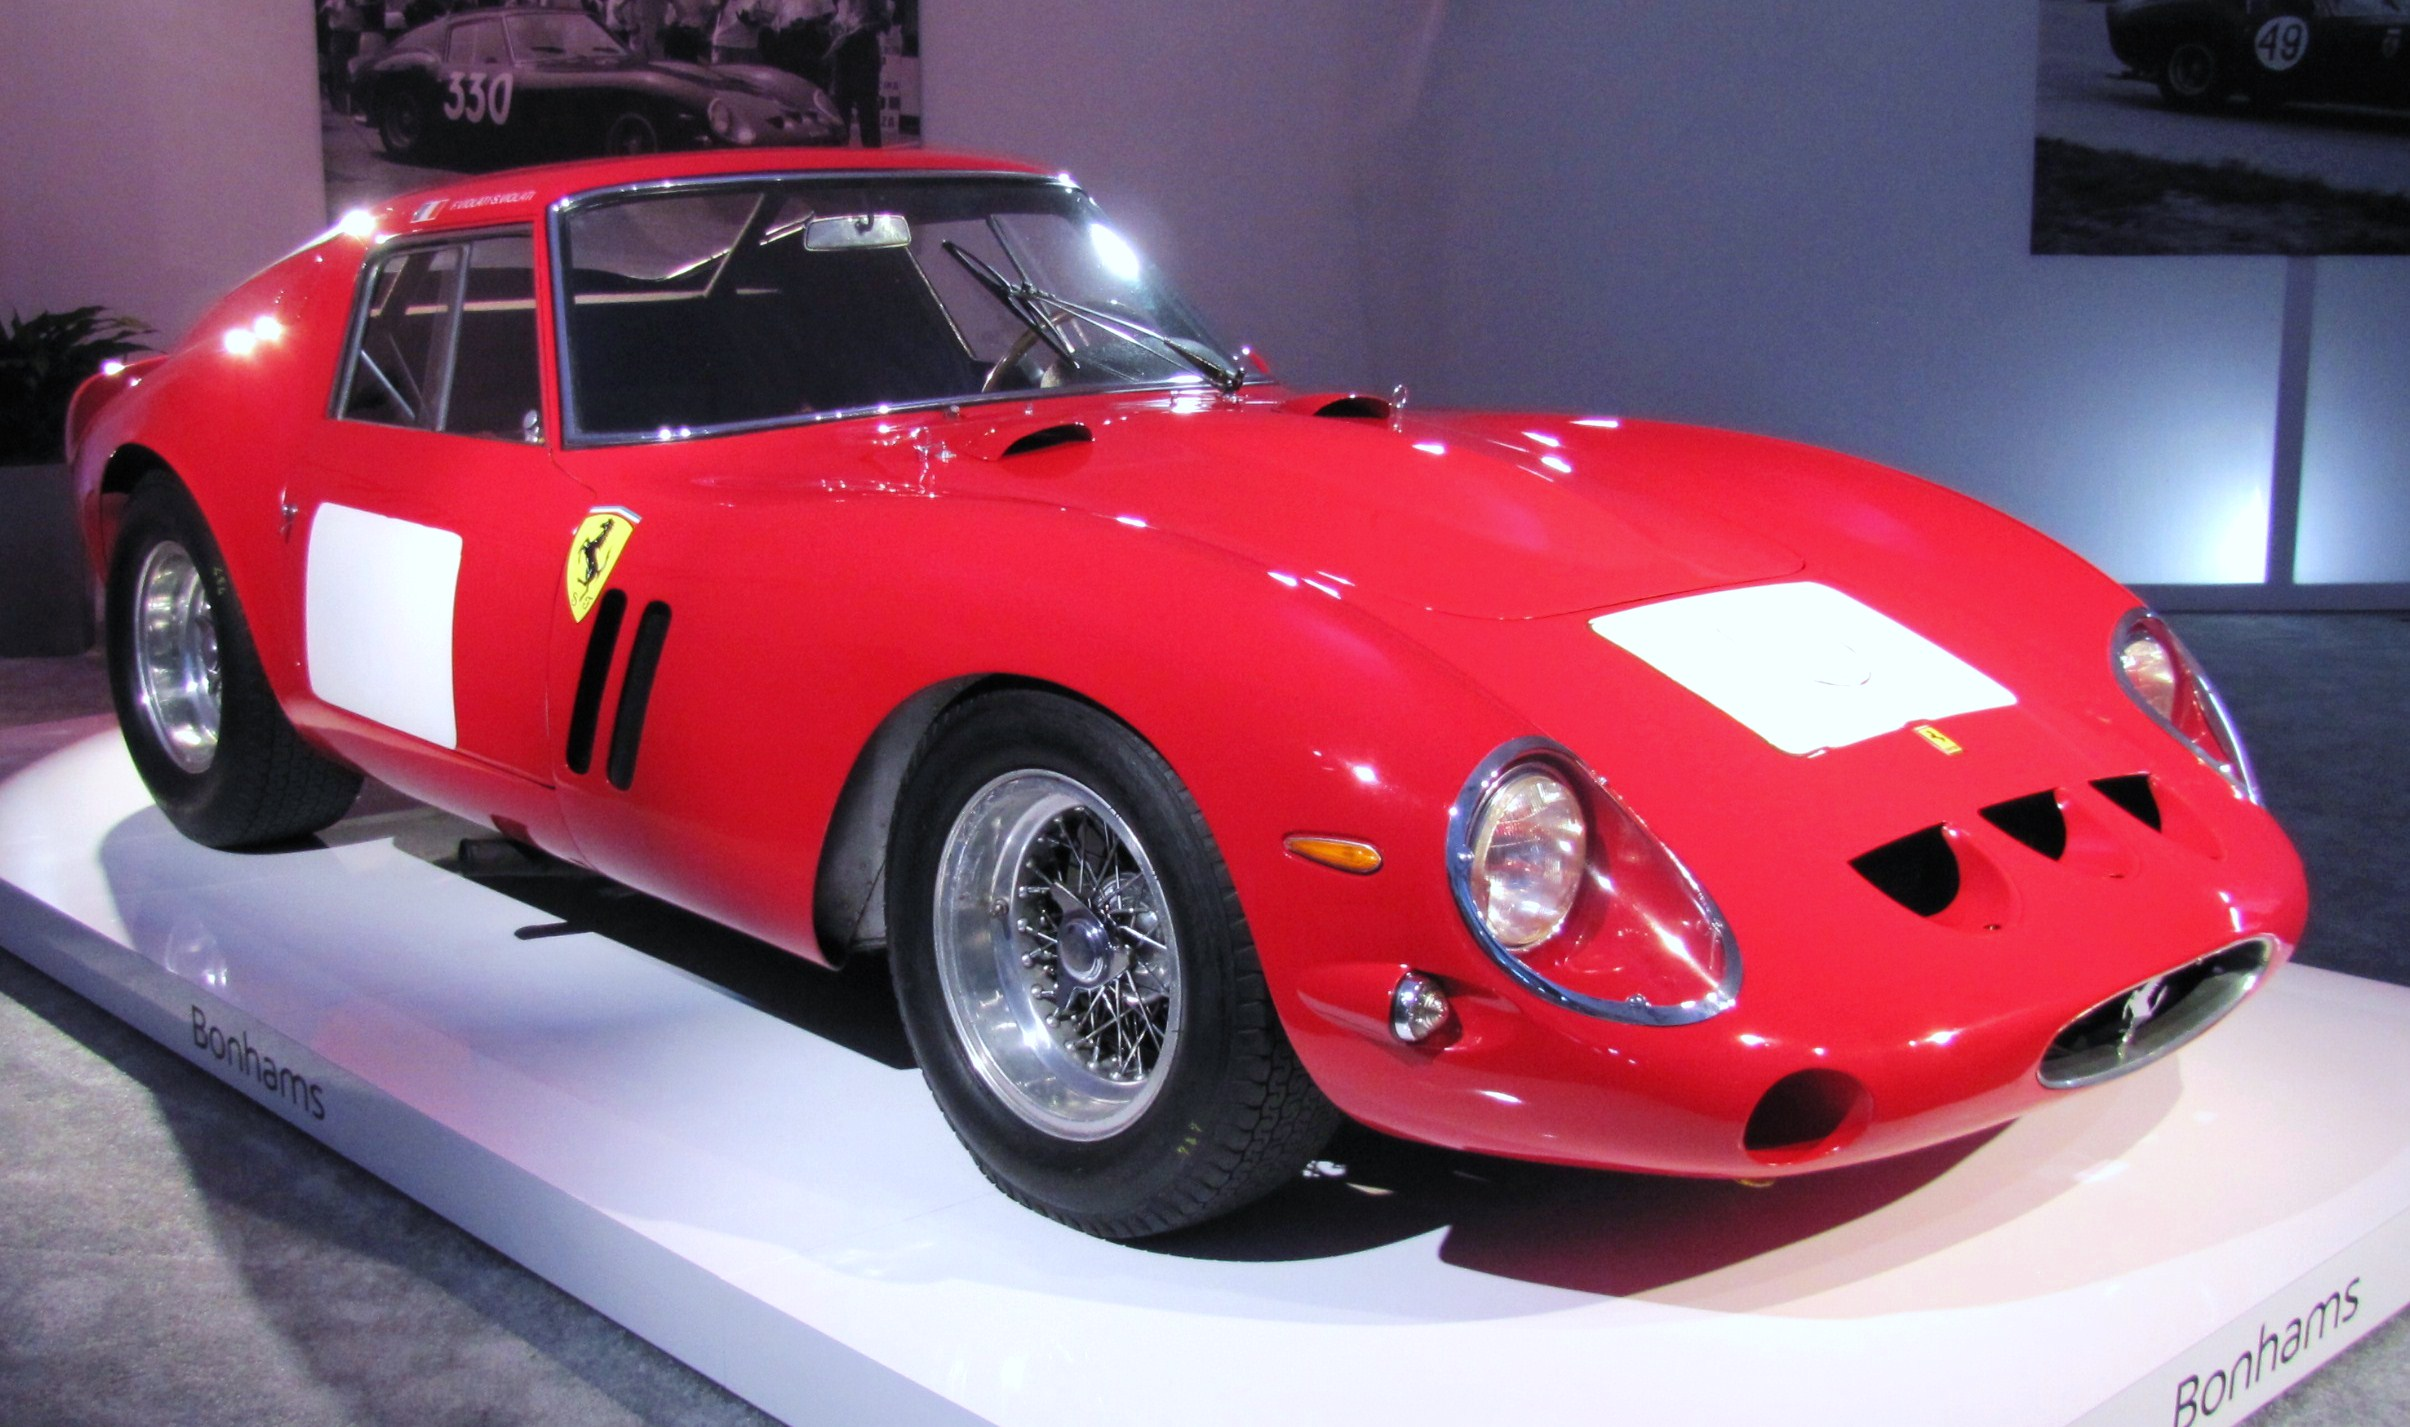 Classic car auction sales hit $1 3B in 2014 Hagerty says